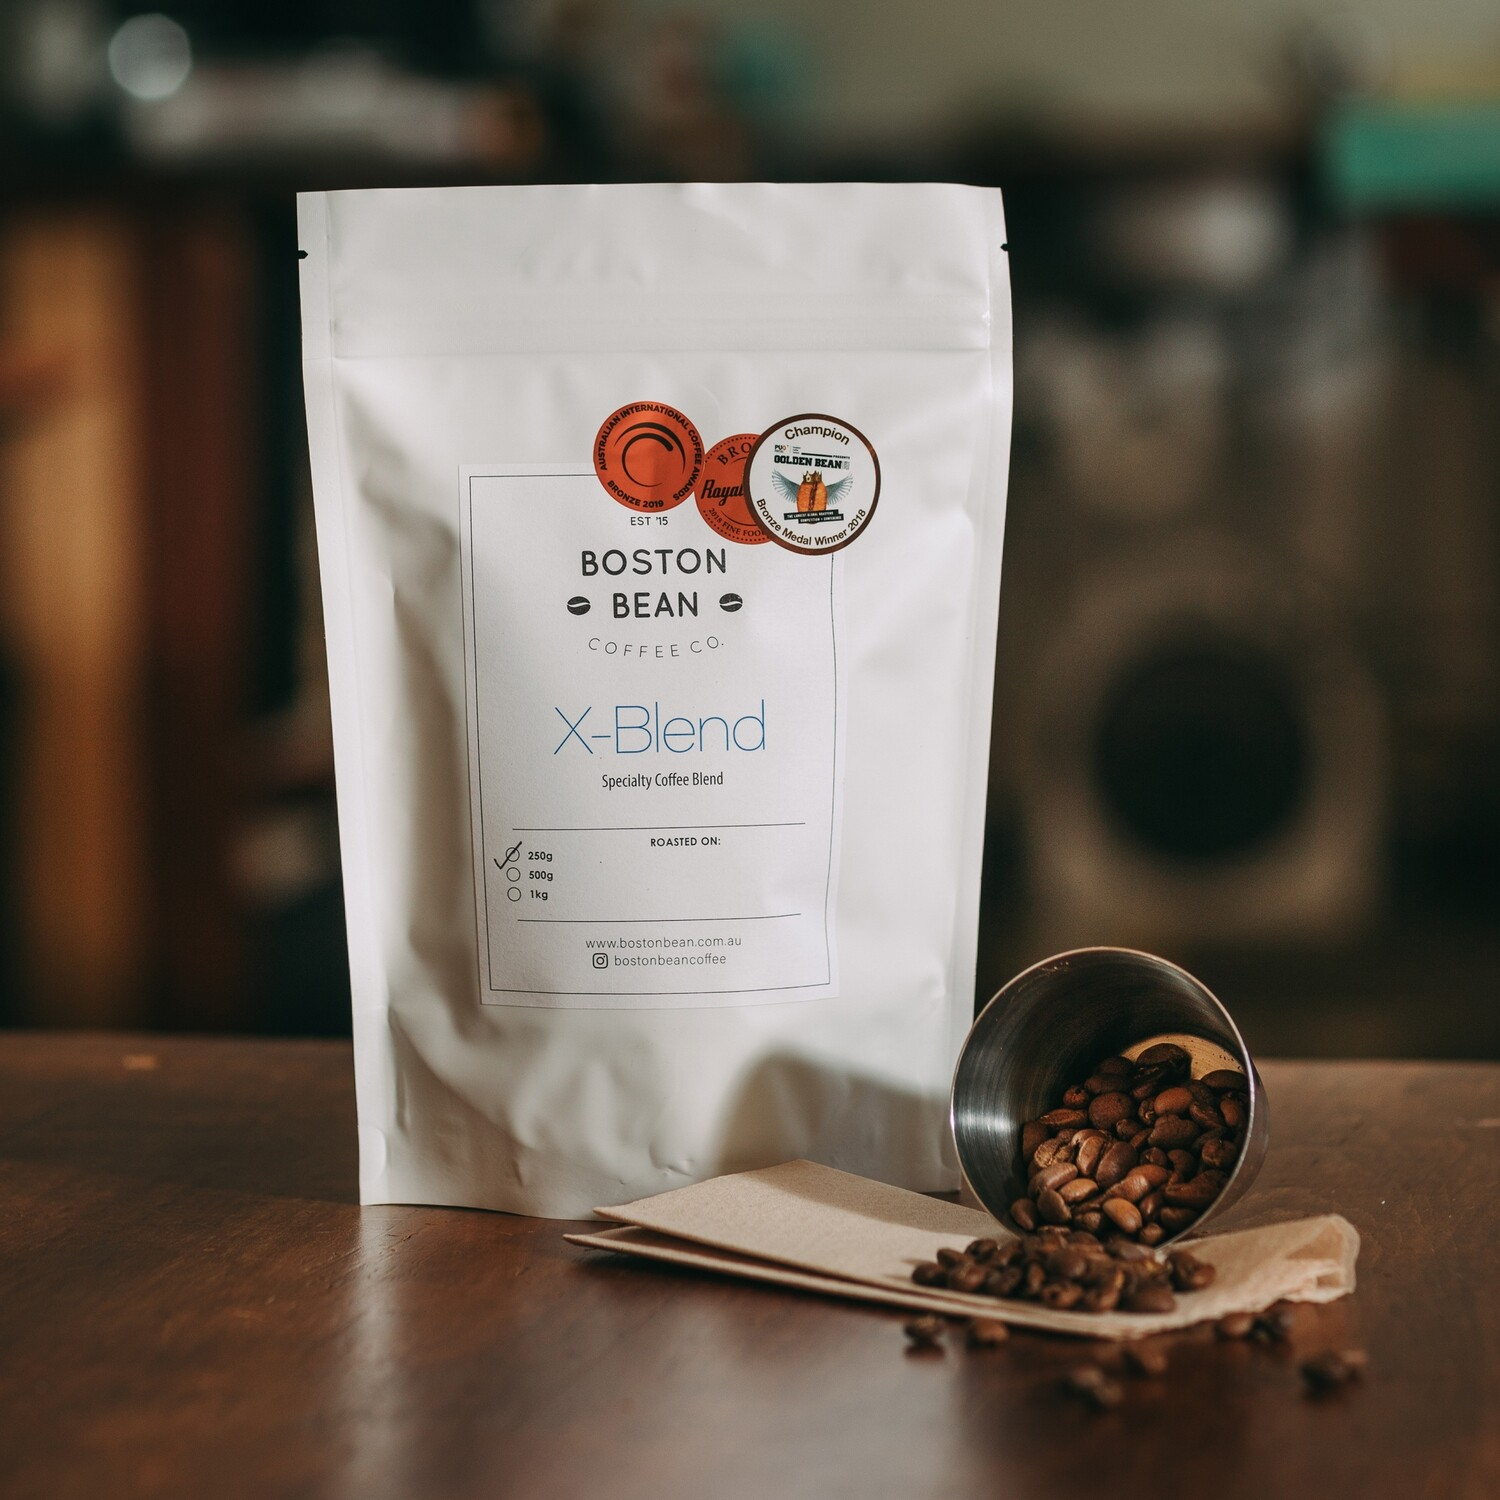 X-Blend Specialty Coffee Blend